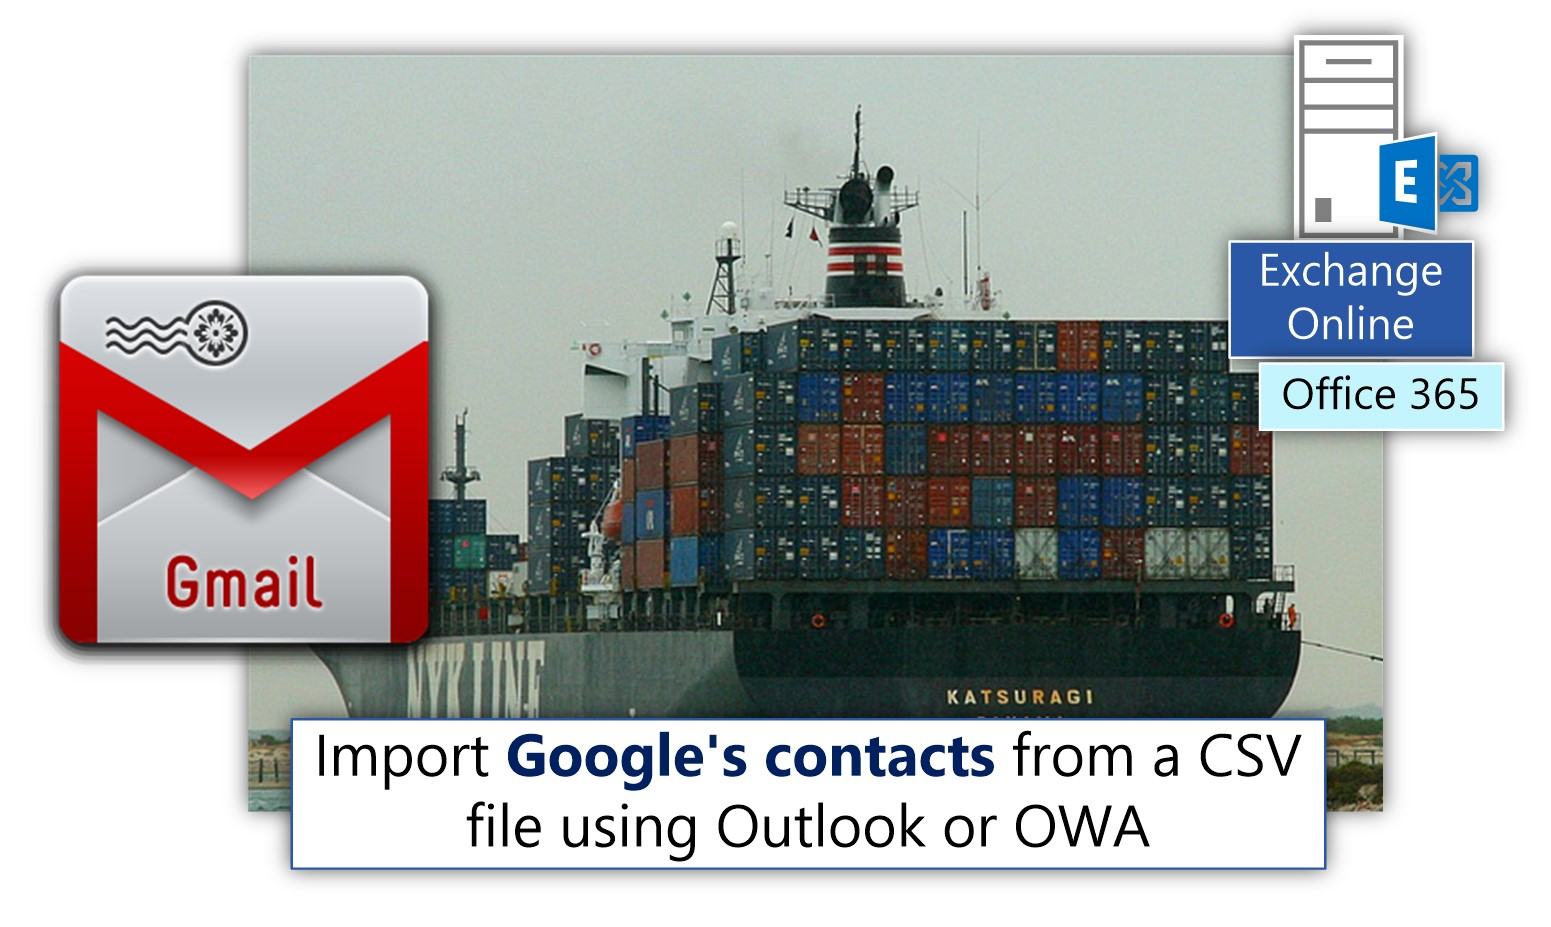 Import Google's contacts from a CSV file using Outlook or